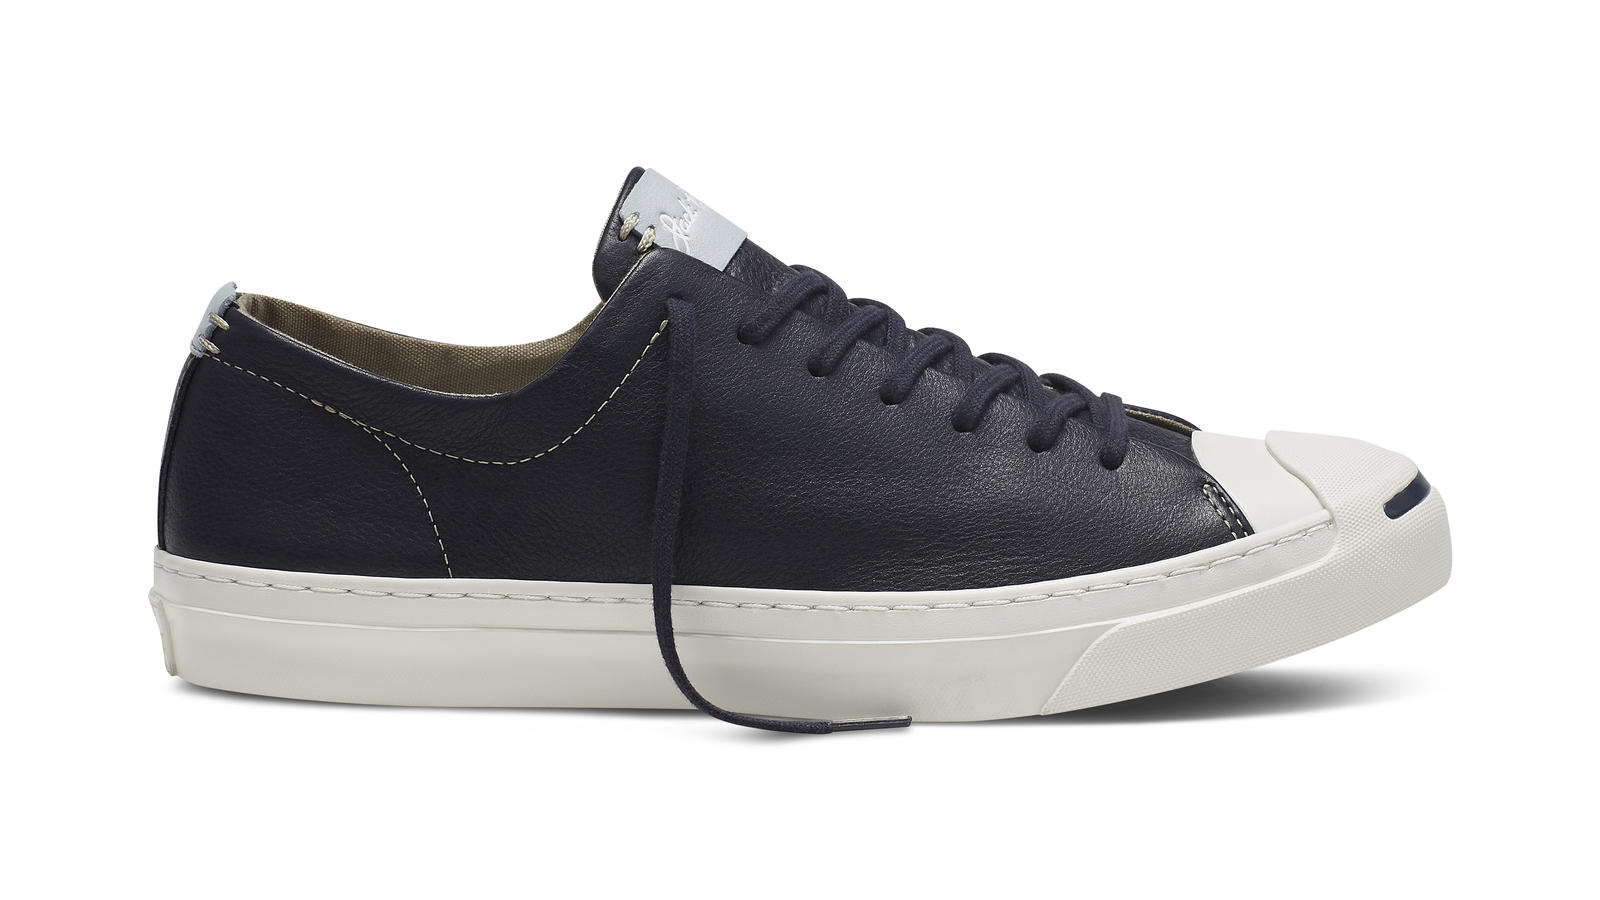 11cdf76507321c Converse Jack Purcell Remastered in Tumbled Leather - Nike News